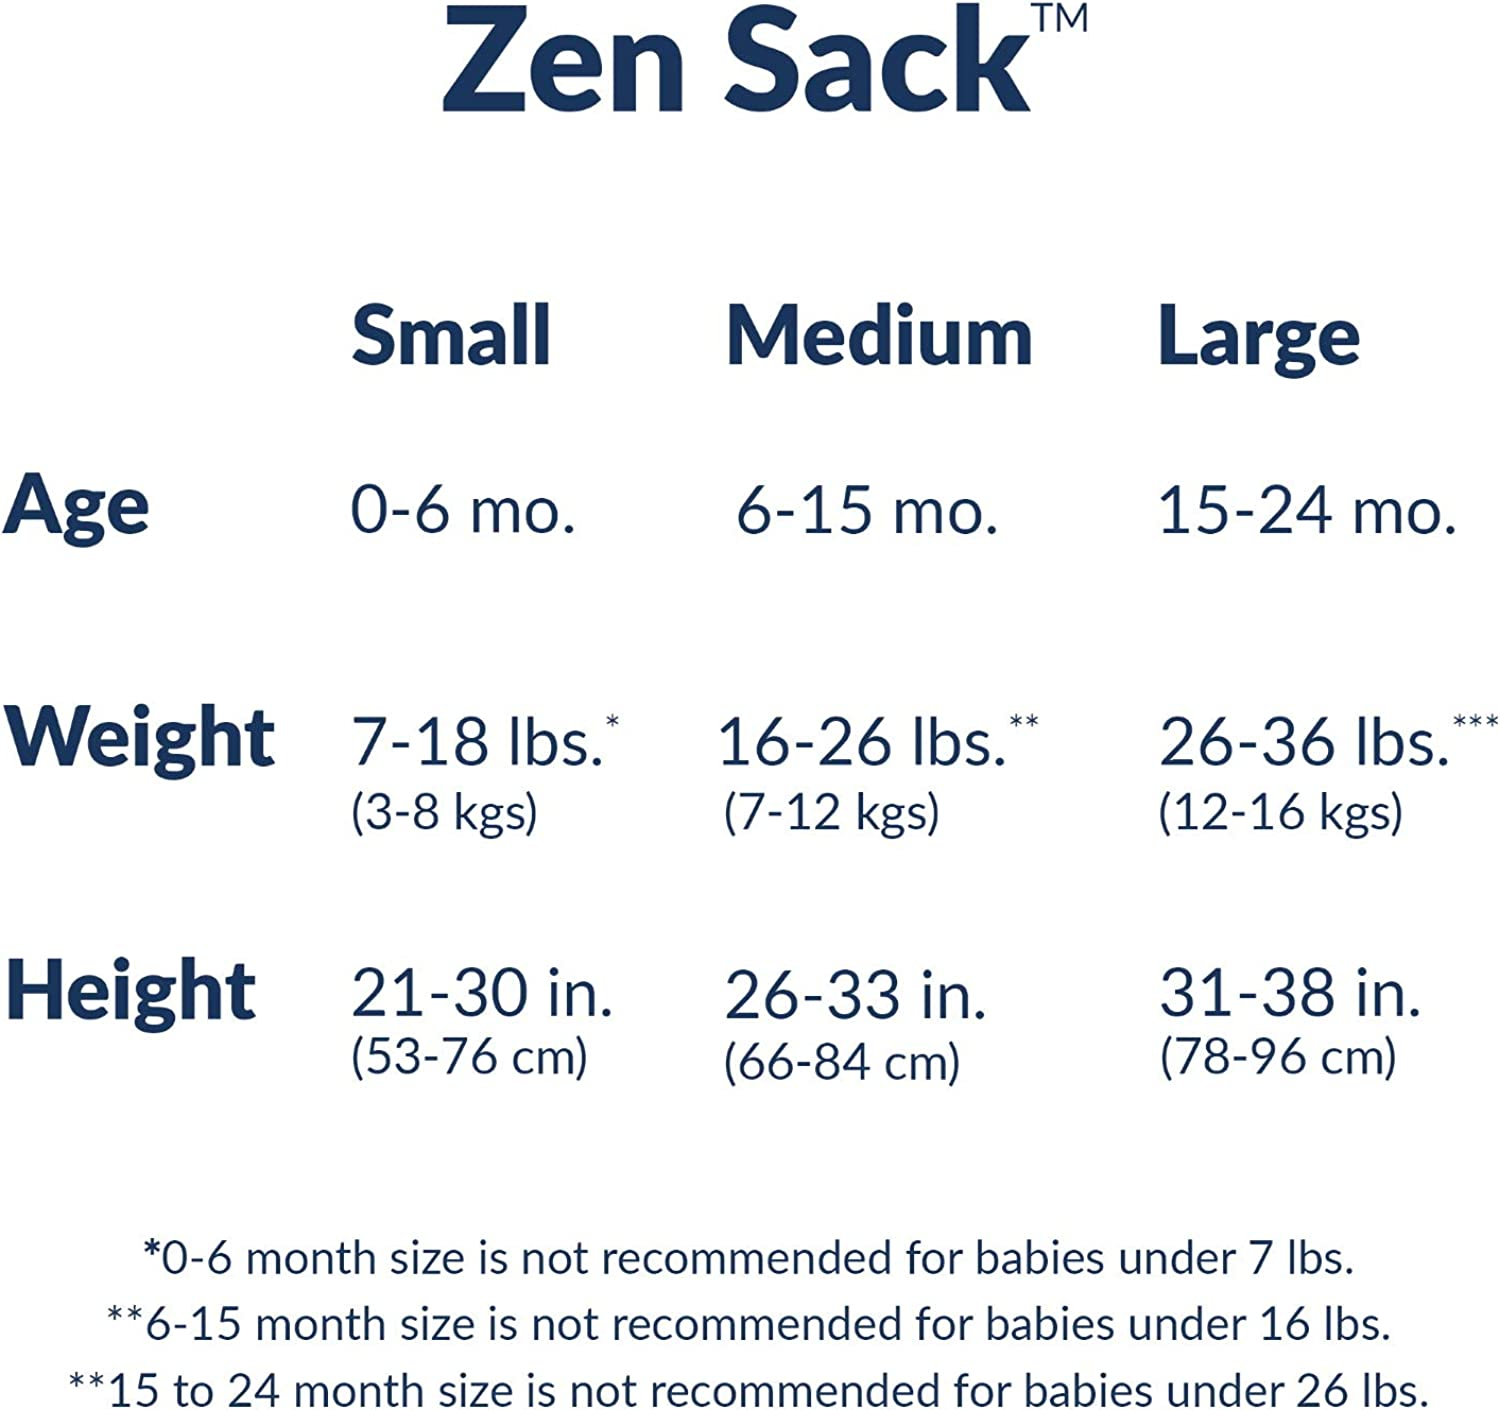 Nested Bean Zen Sack Classic Baby Sleeping Bag Adjustable Cotton Wearable Blanket